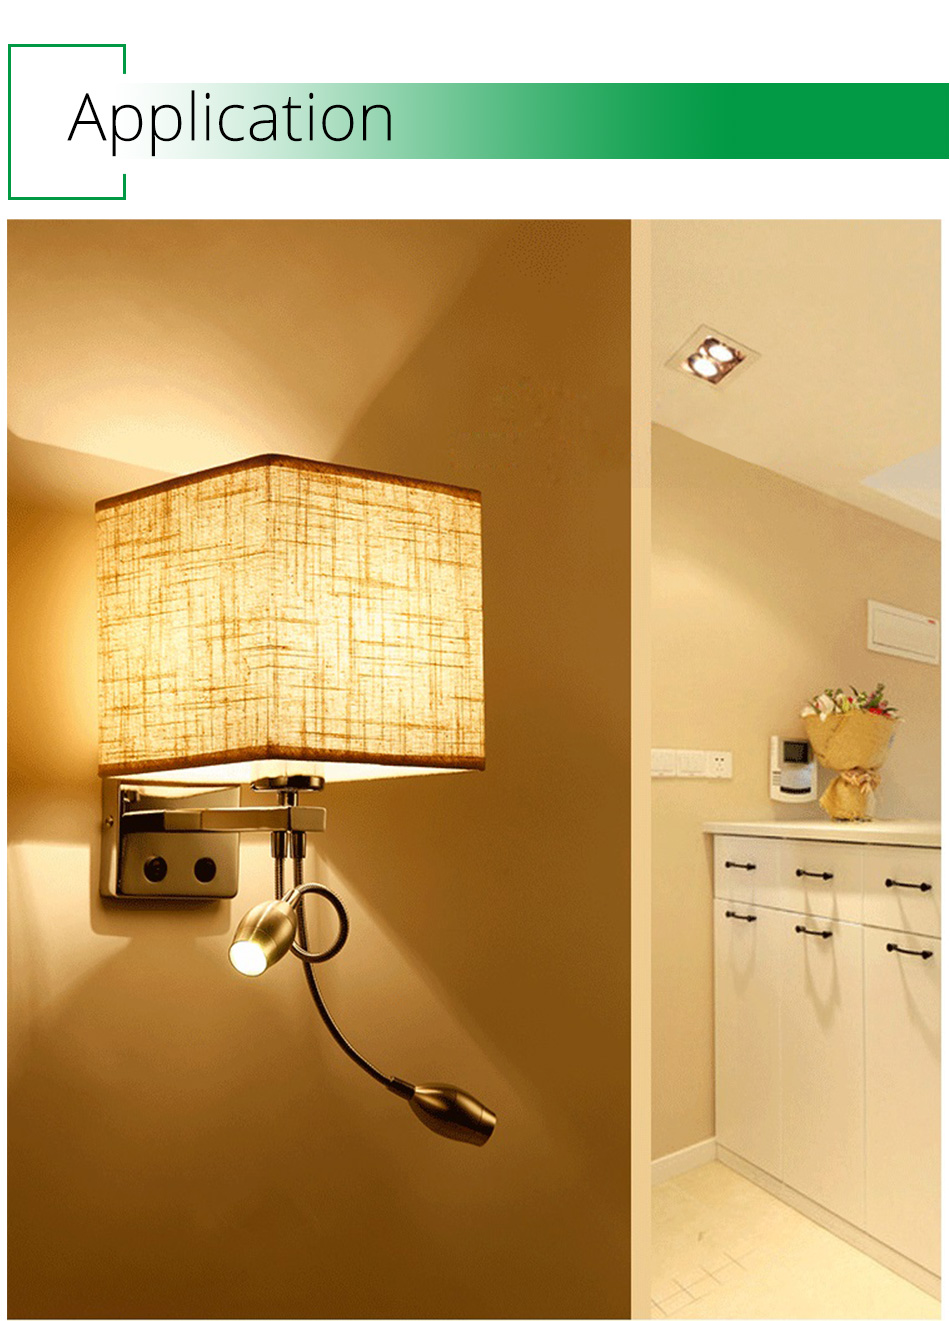 Wall Lamp Sconce Switch Stairs Light Luminaires Fixture E27 Bulb Bedroom Decor Bathroom Modern Bedside Lighting Wall Mounted (16)